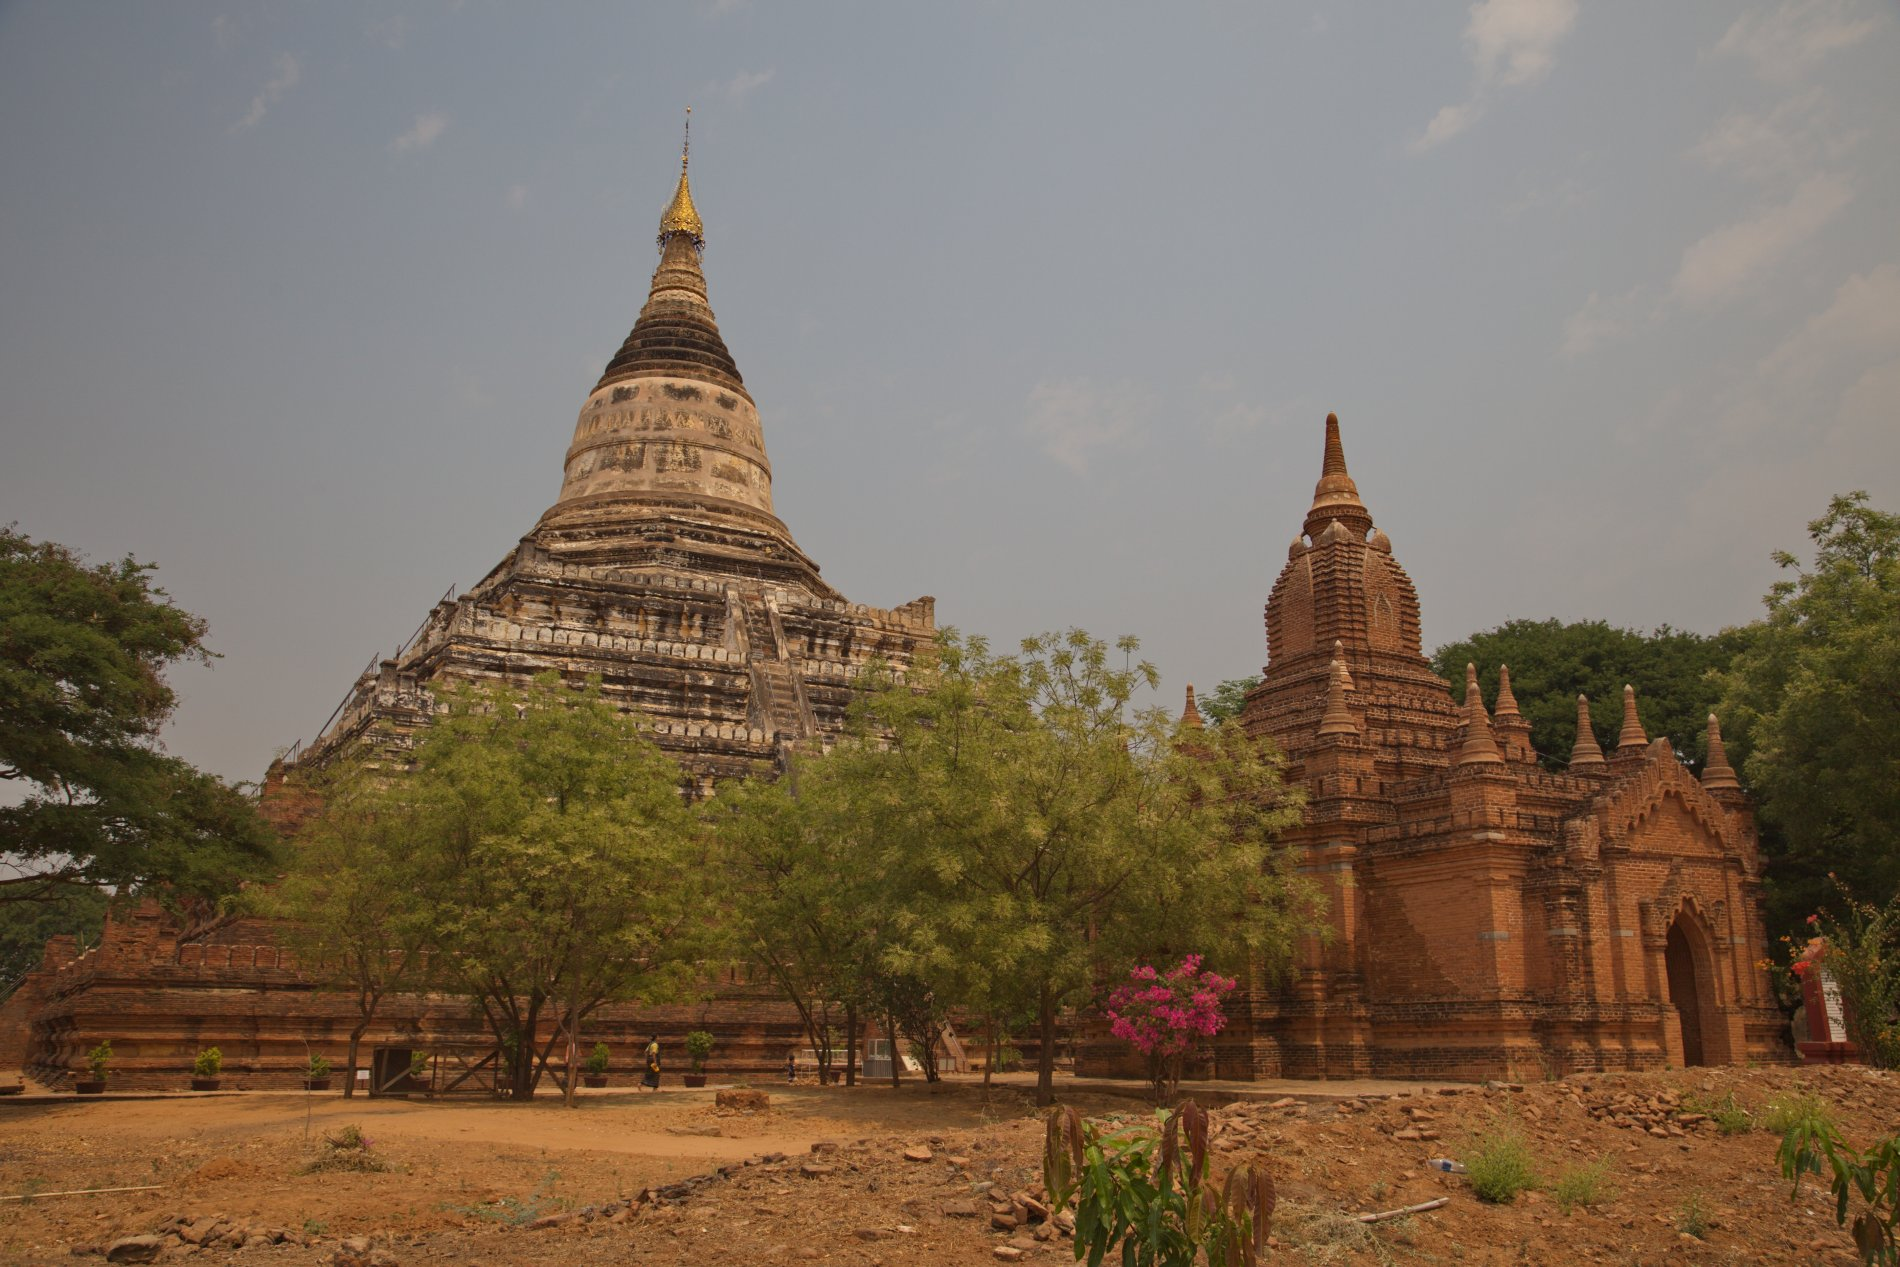 Bagan_148.jpg-commment